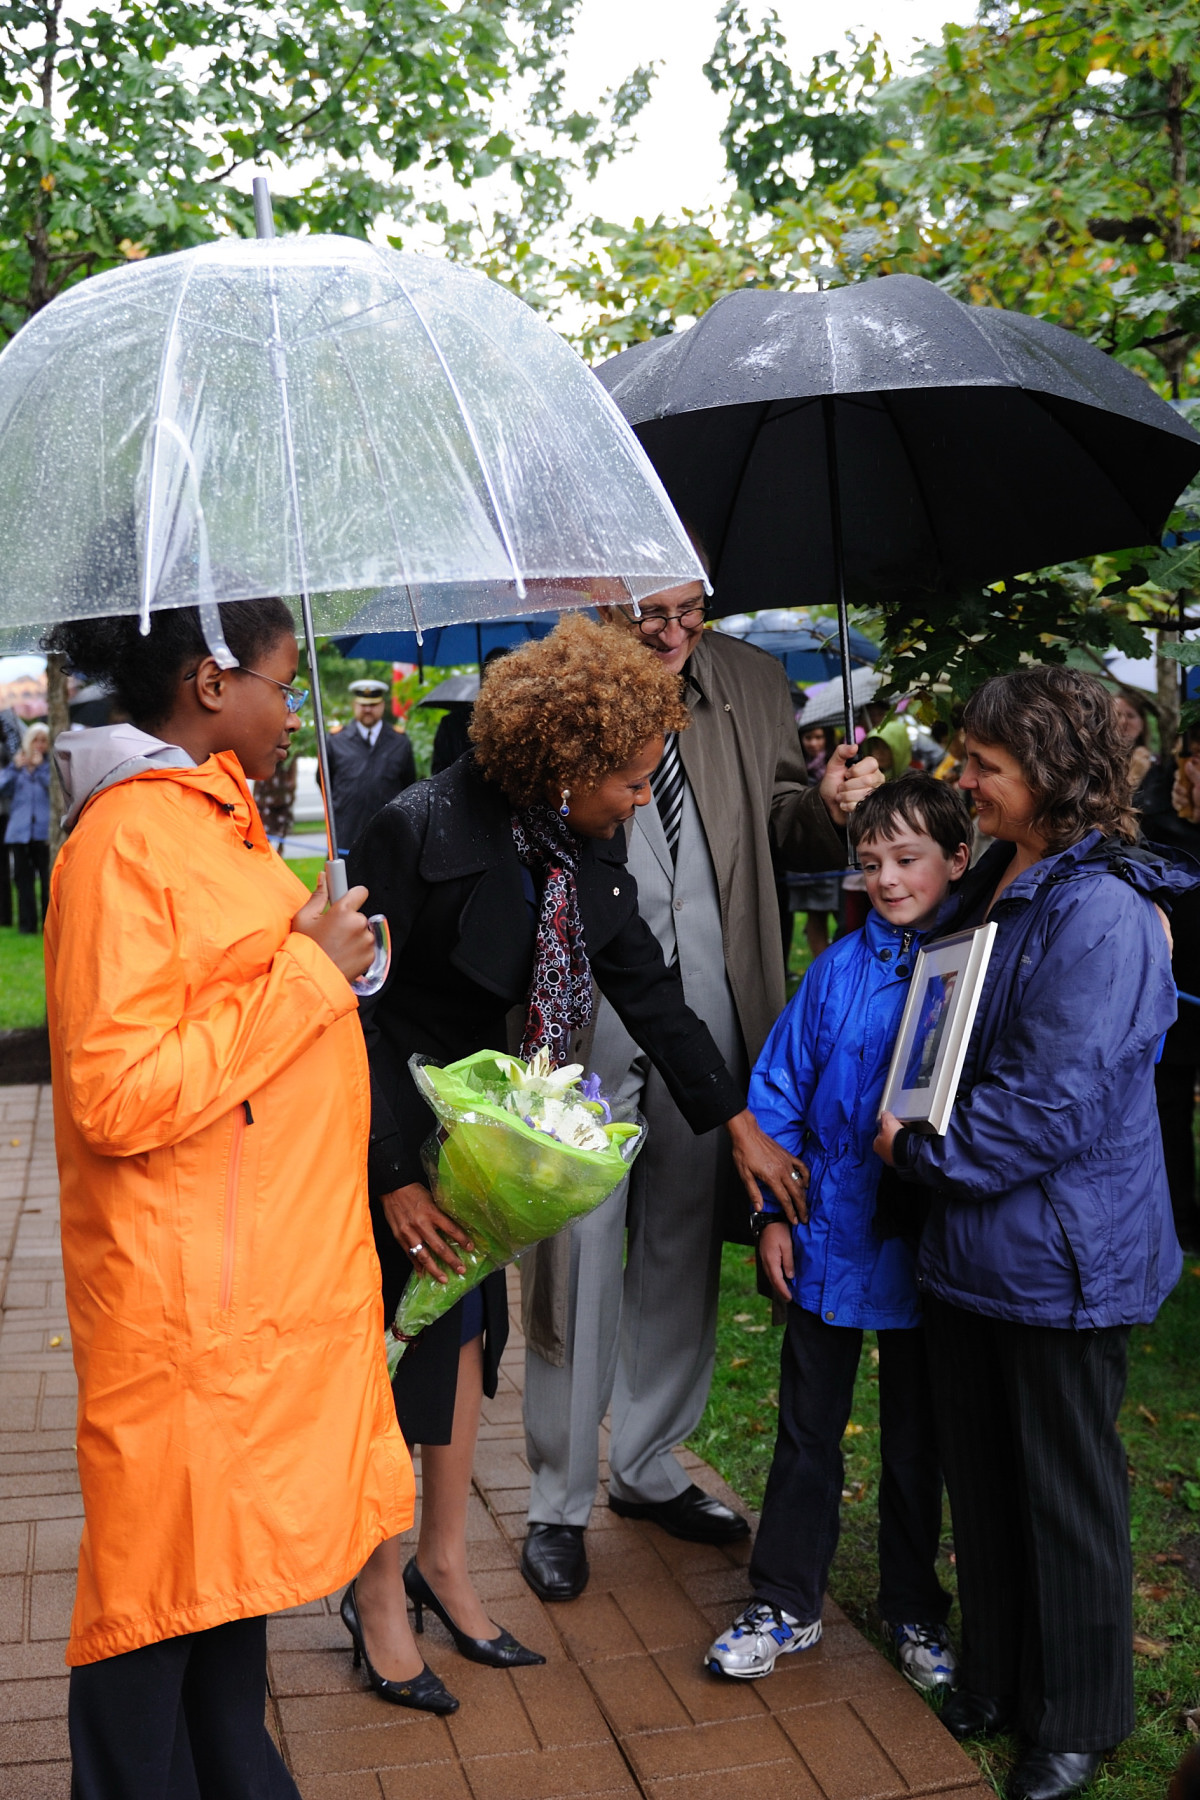 Their Excellencies and Marie-Éden spoke with members of the public who came to witness the tree planting ceremony.